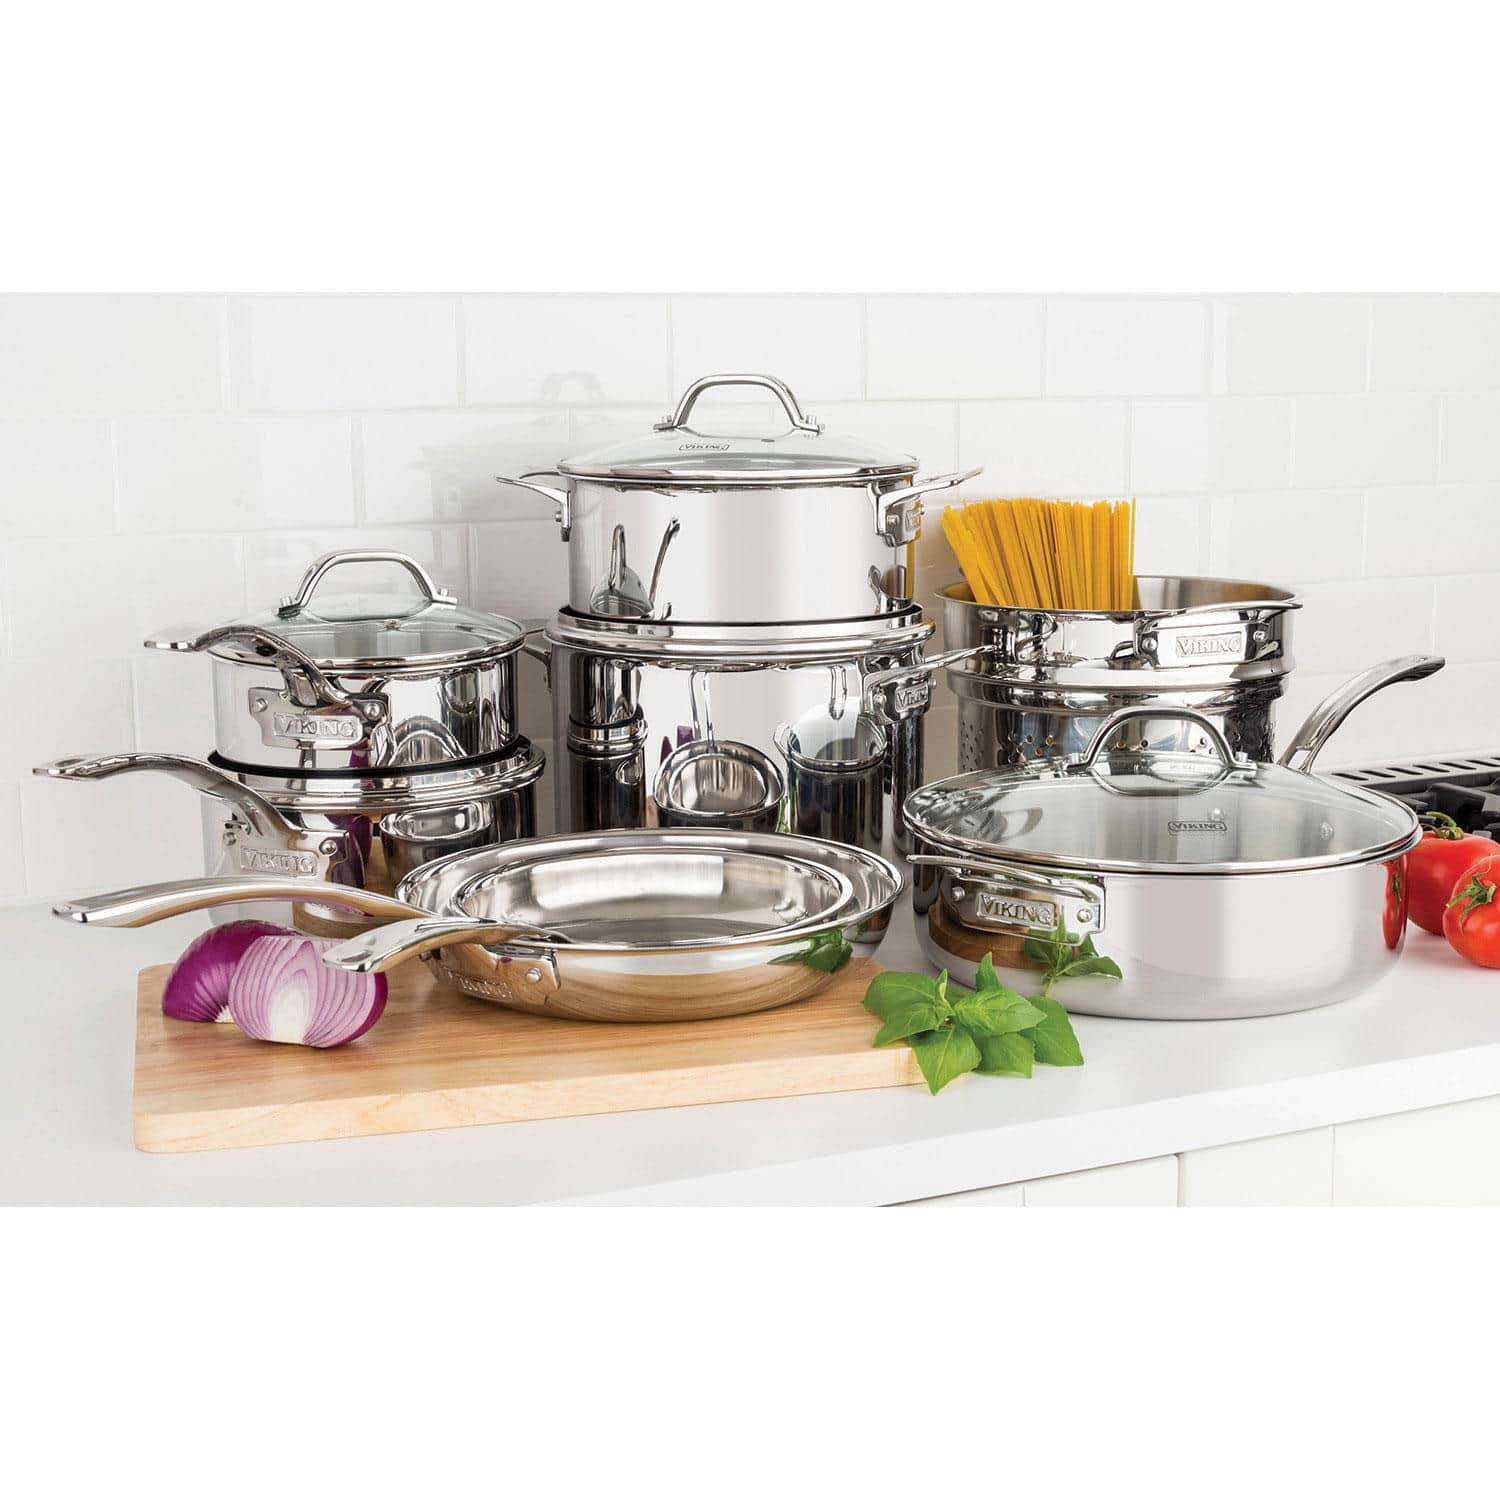 Viking 13-Piece Tri-Ply Cookware Set $149.81